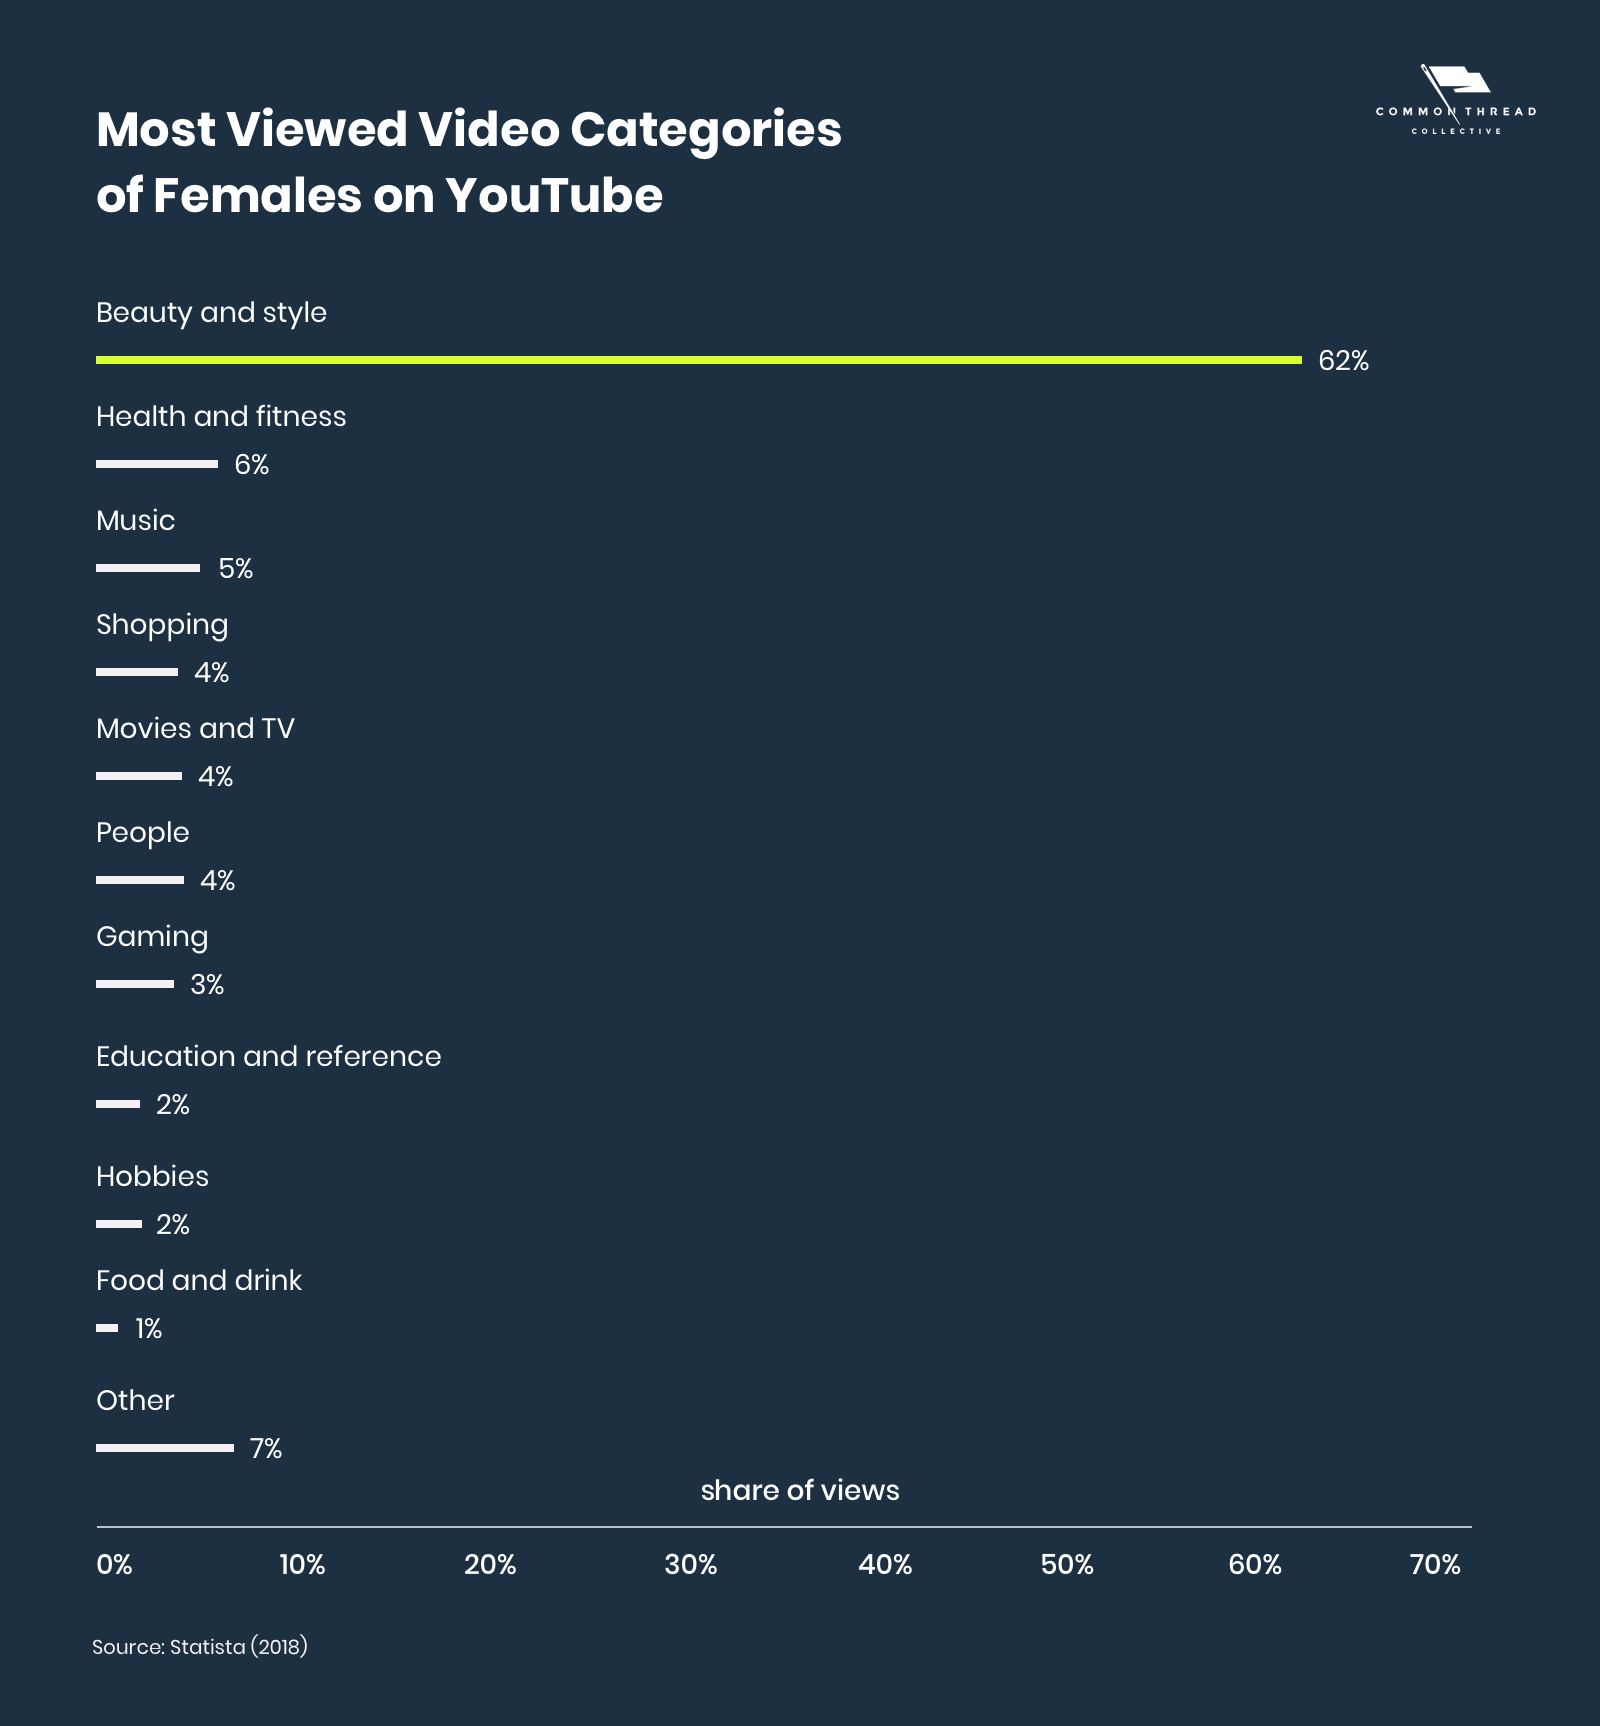 Most Viewed Video Categories of Females on YouTube